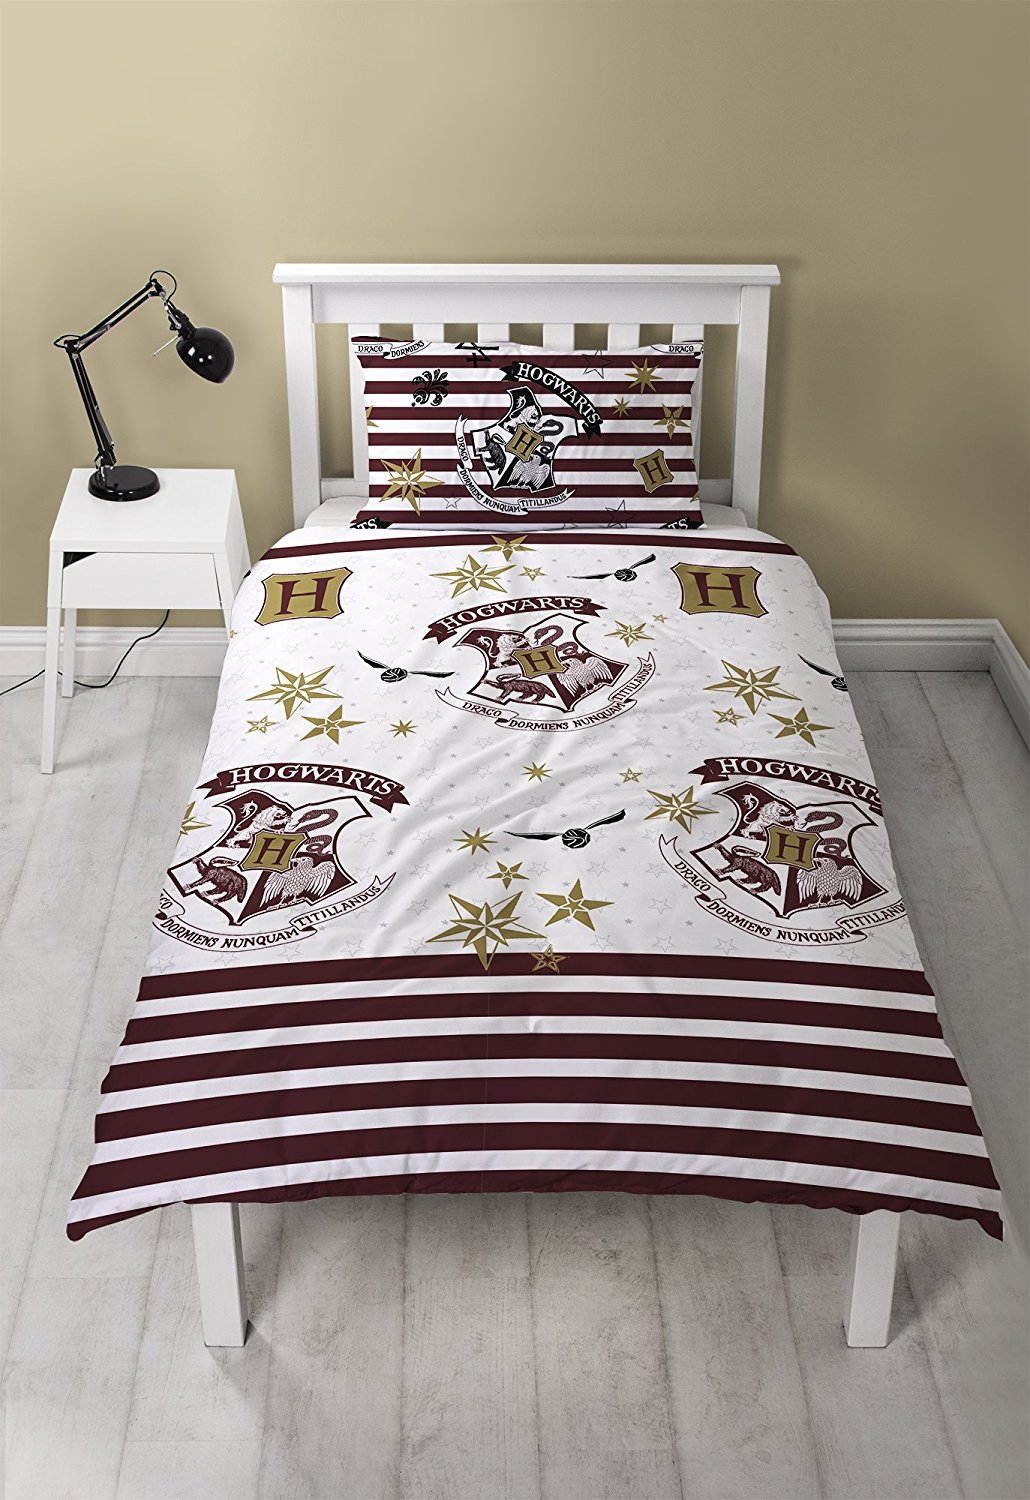 Harry Potter Single Reversible Duvet Rotary Bed Quilt Cover Set